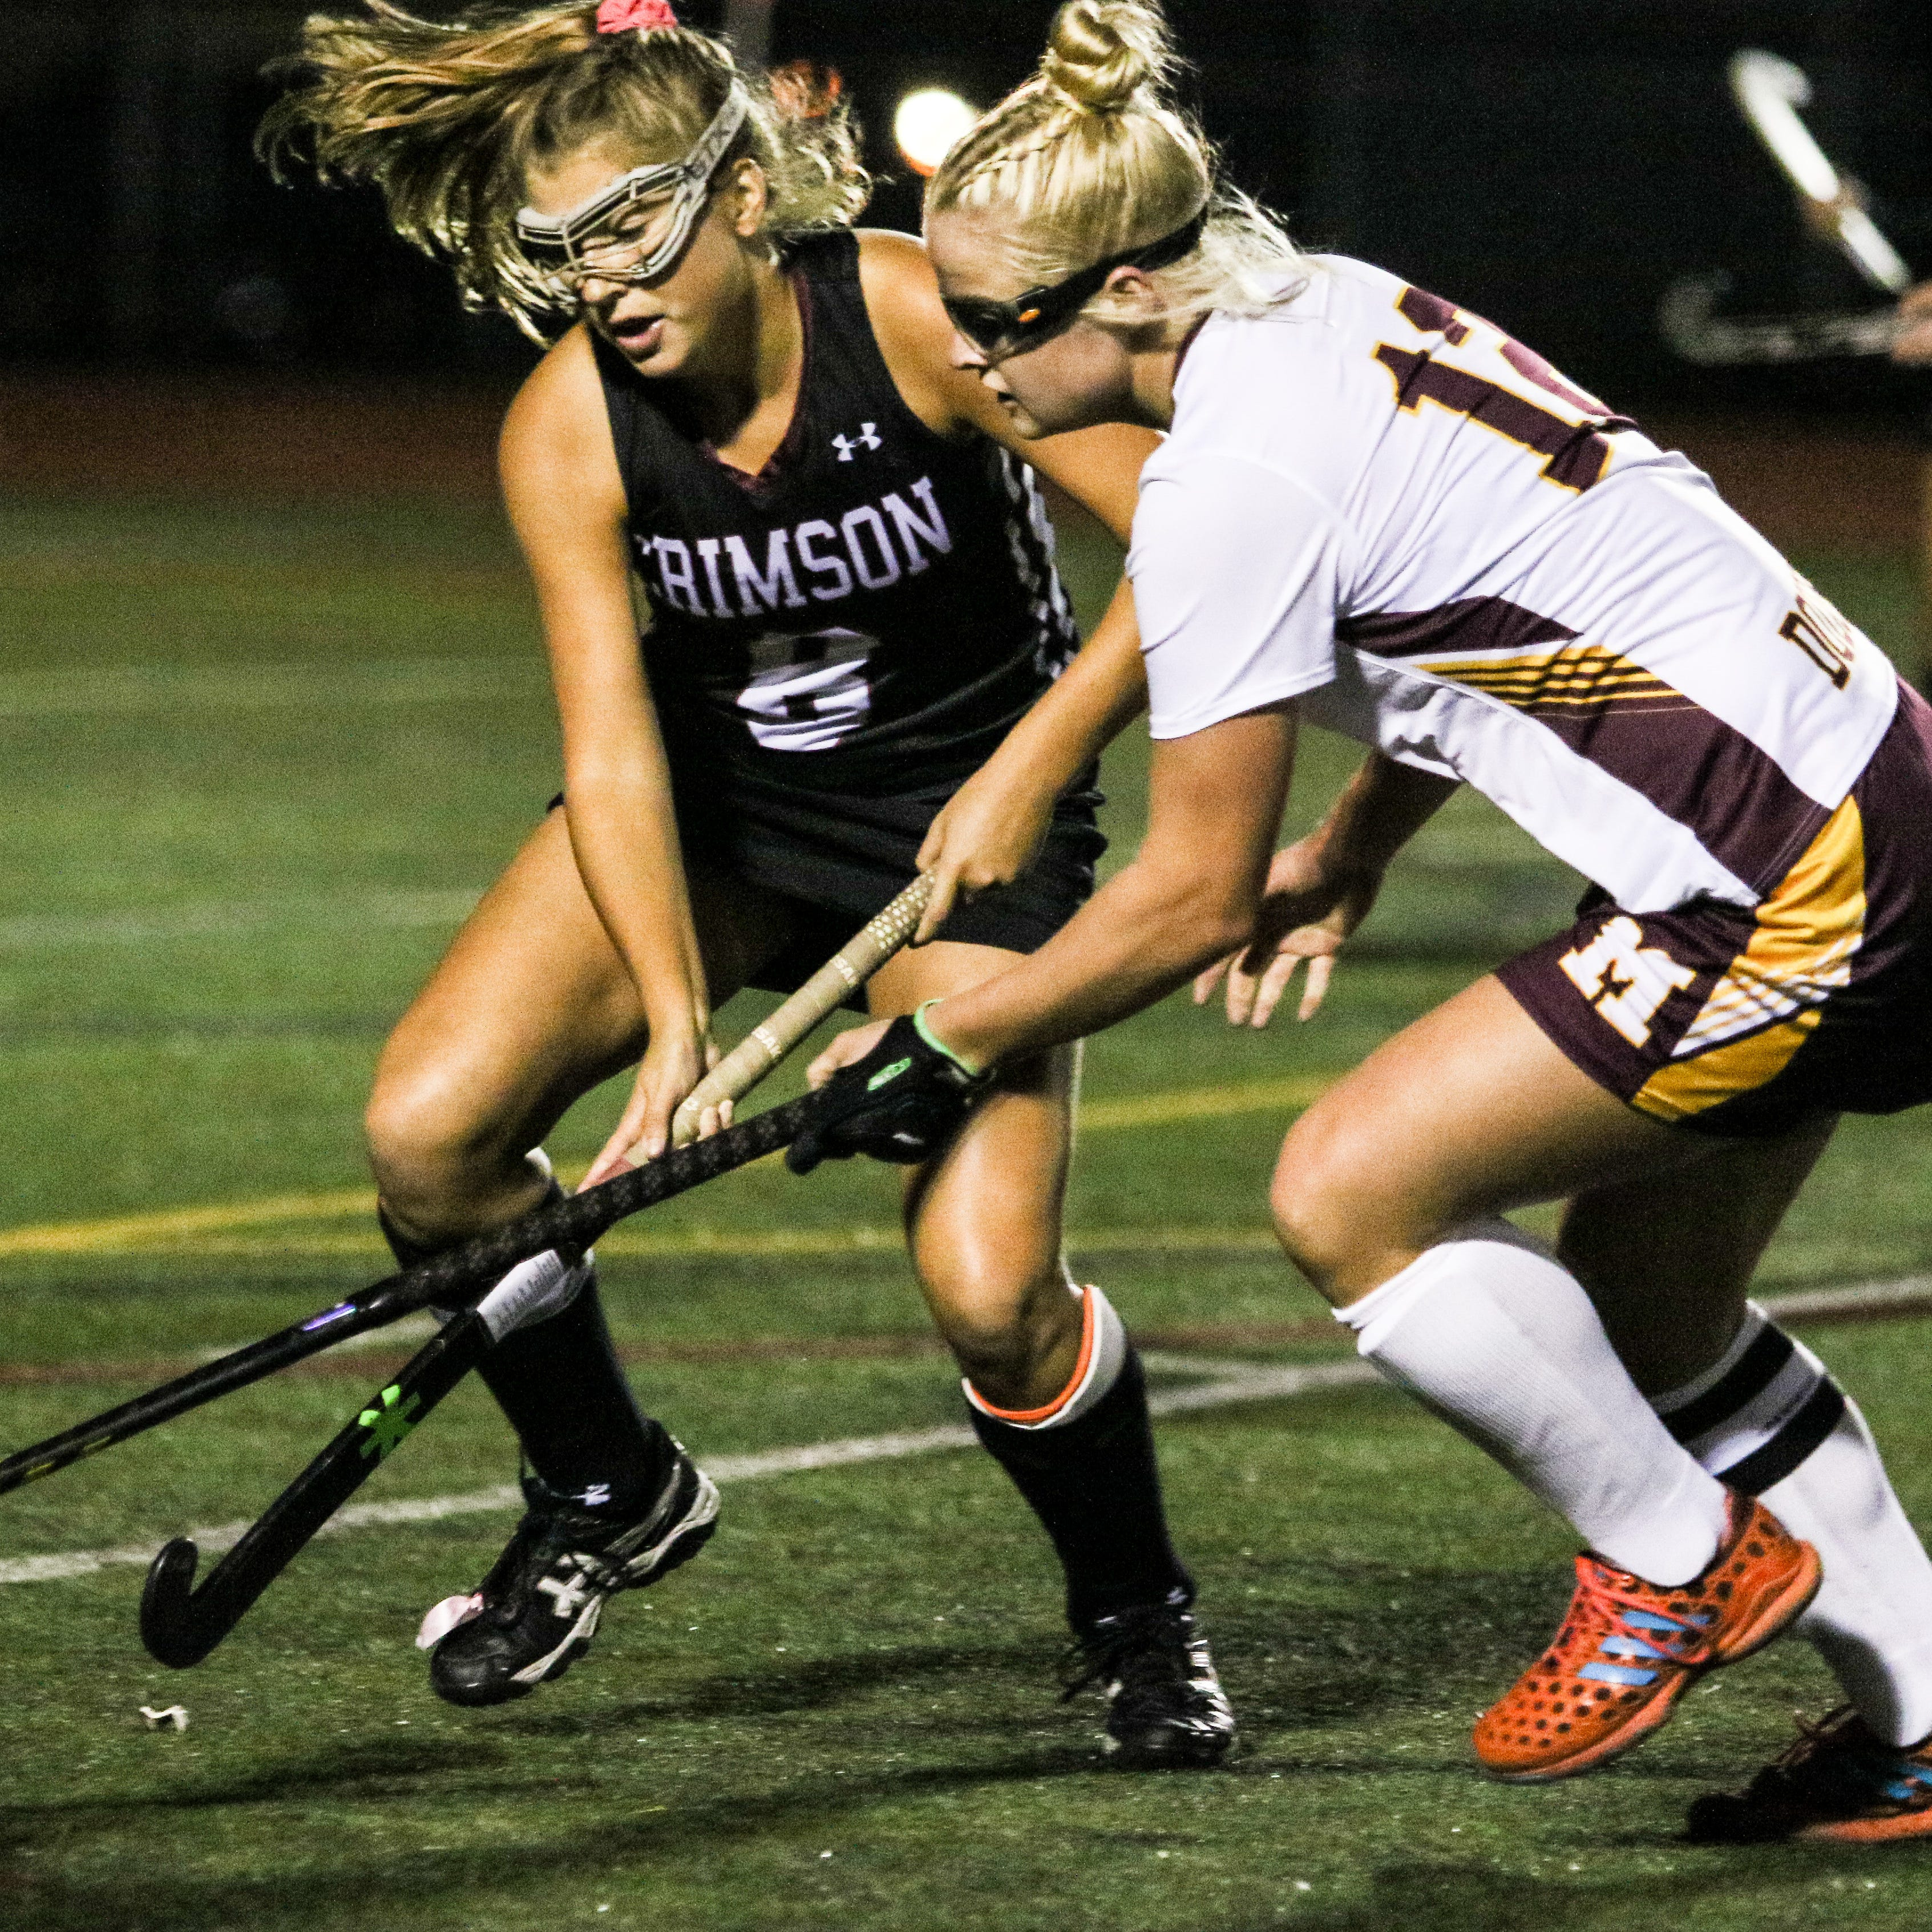 Madison field hockey wins Morris County Tournament title led by Kerrianne McClay's hat trick